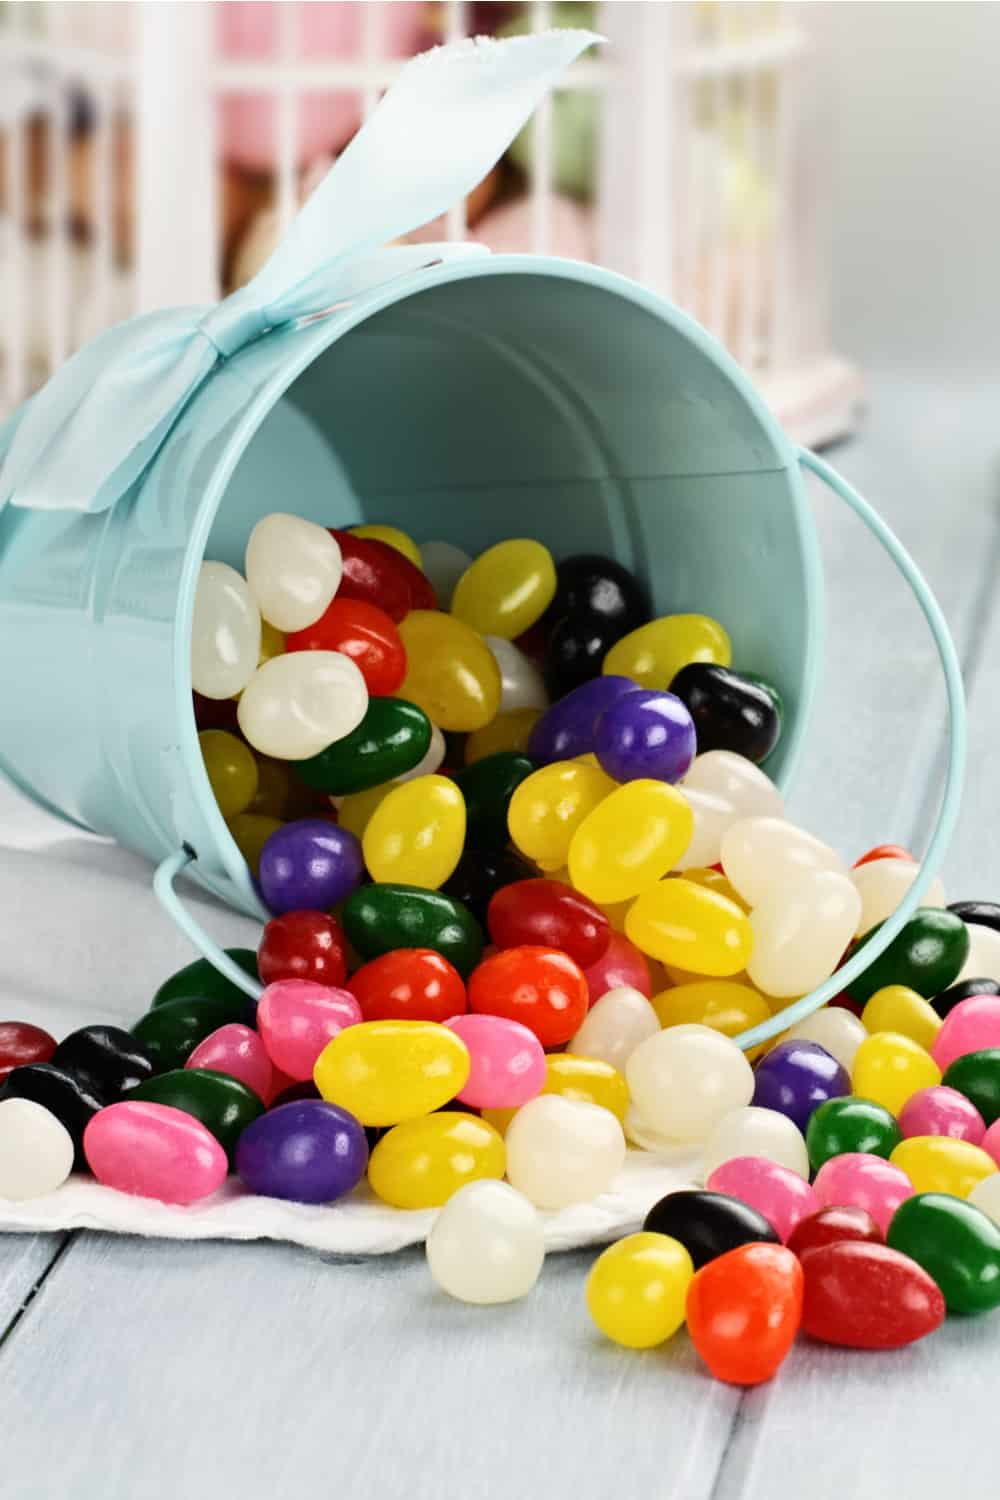 Do Jelly Beans Go Bad How Long Does It Last